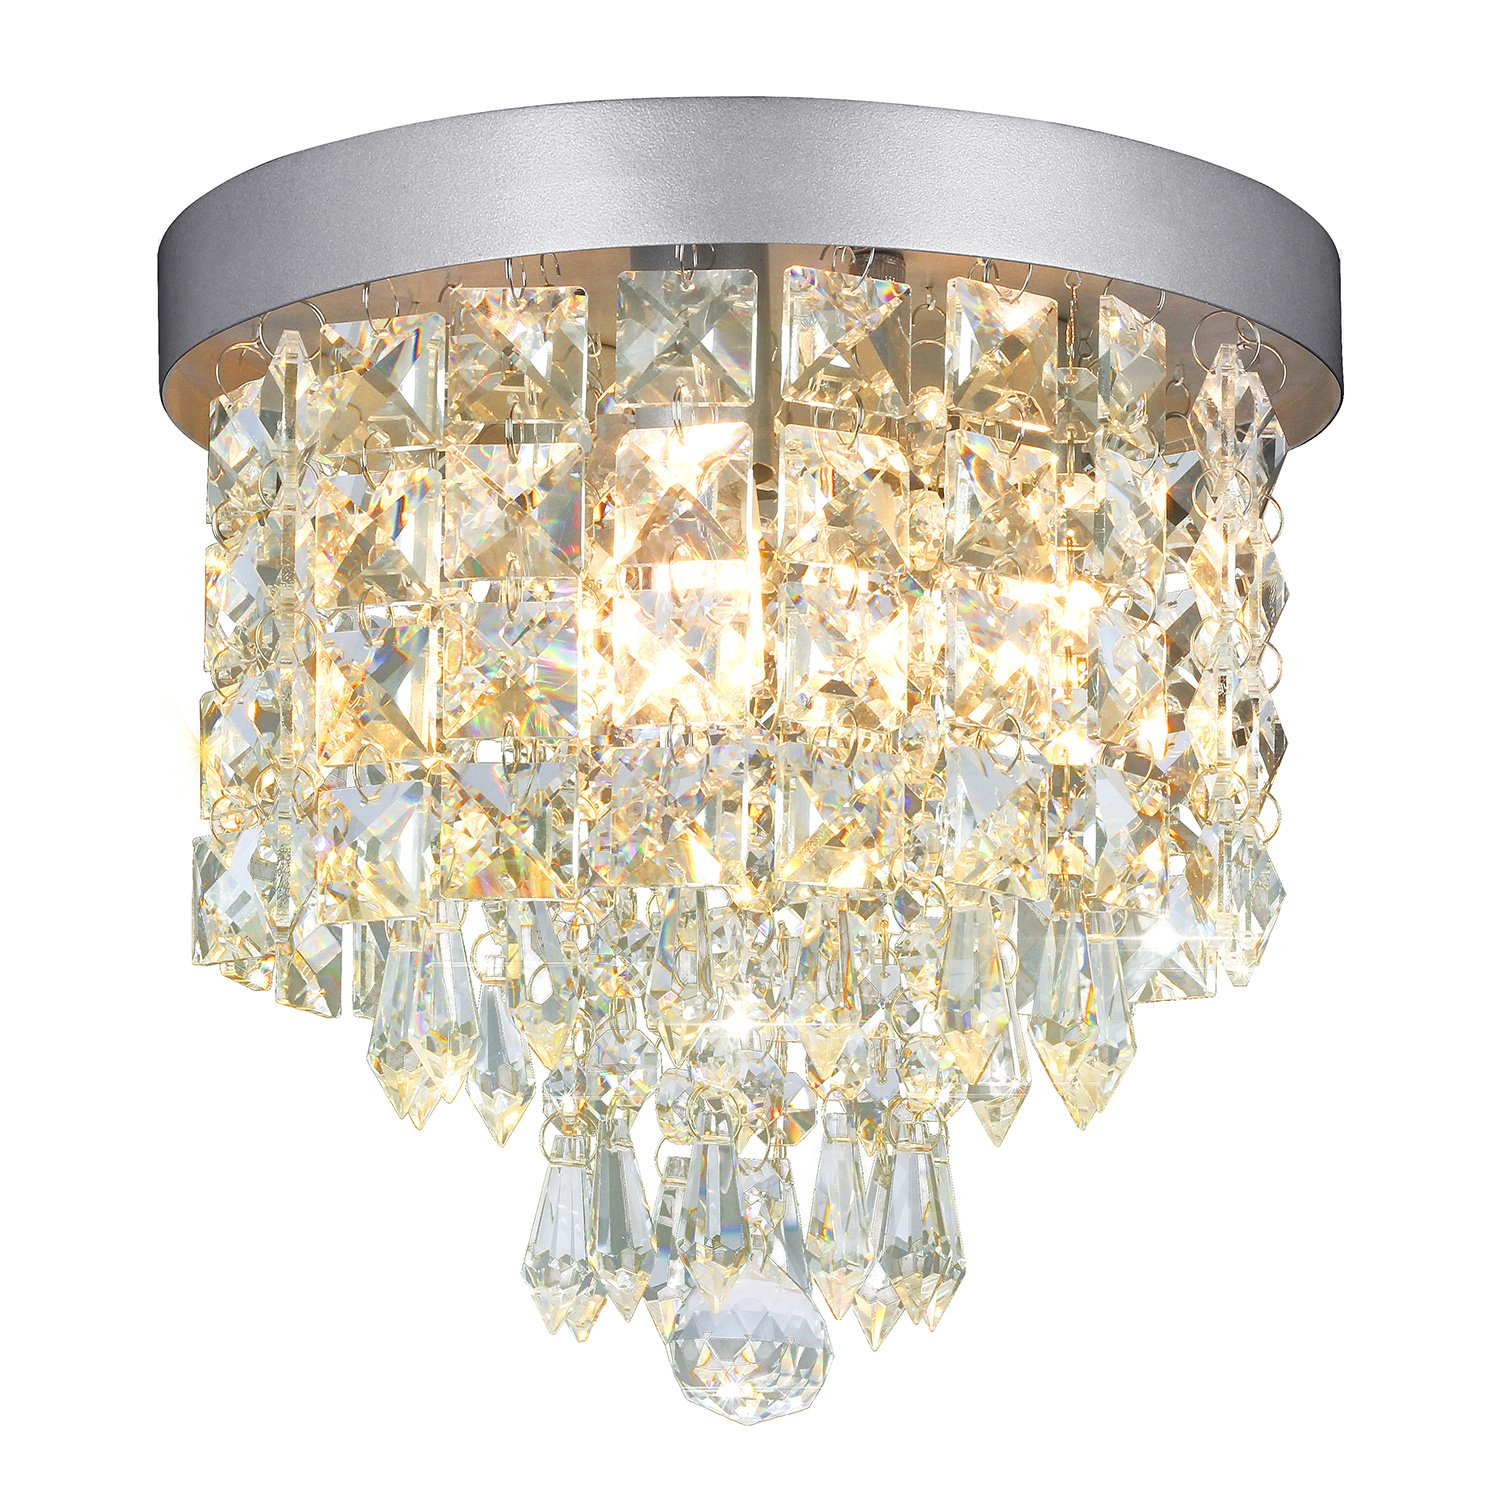 Shine hai crystal chandelier 3 light modern flush mount ceiling pendant light h9 45 x w8 66 for bedroom living room dining room kitchen